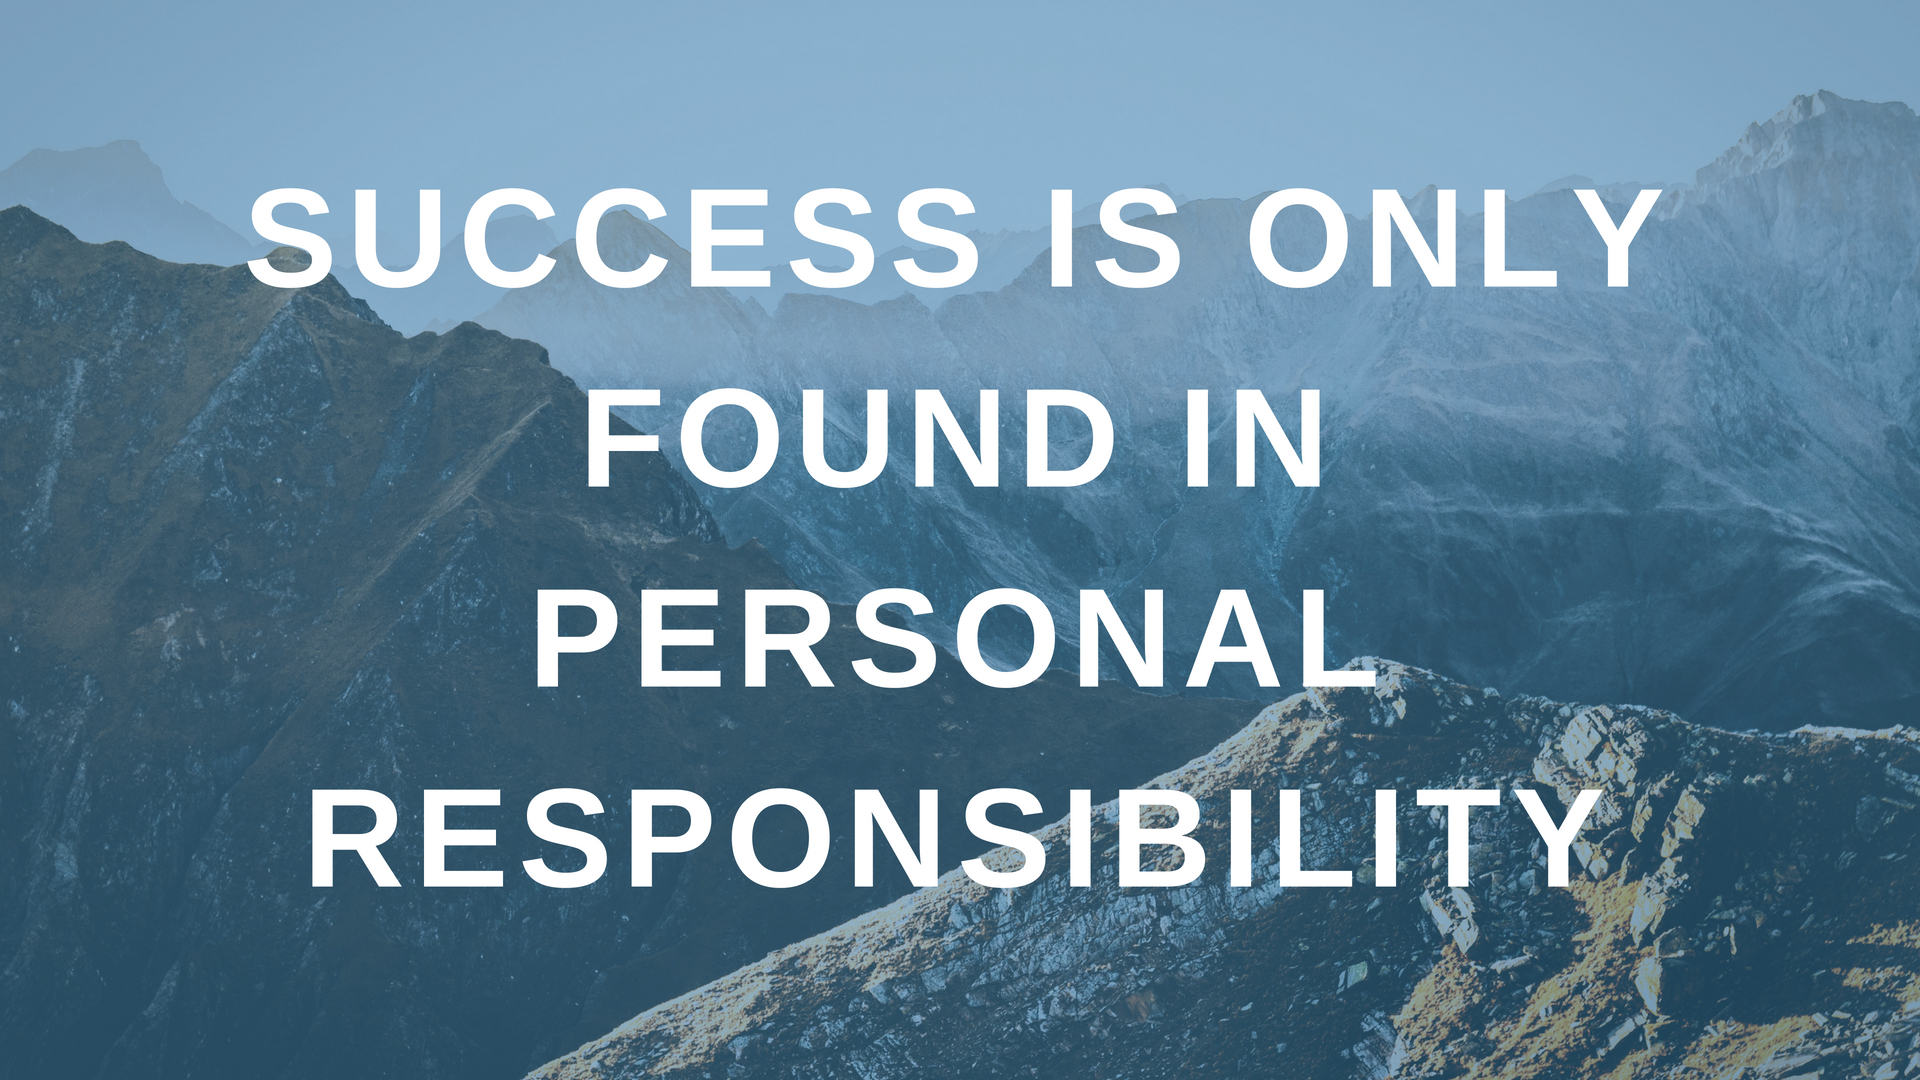 Success is Only Found in Personal Responsibility